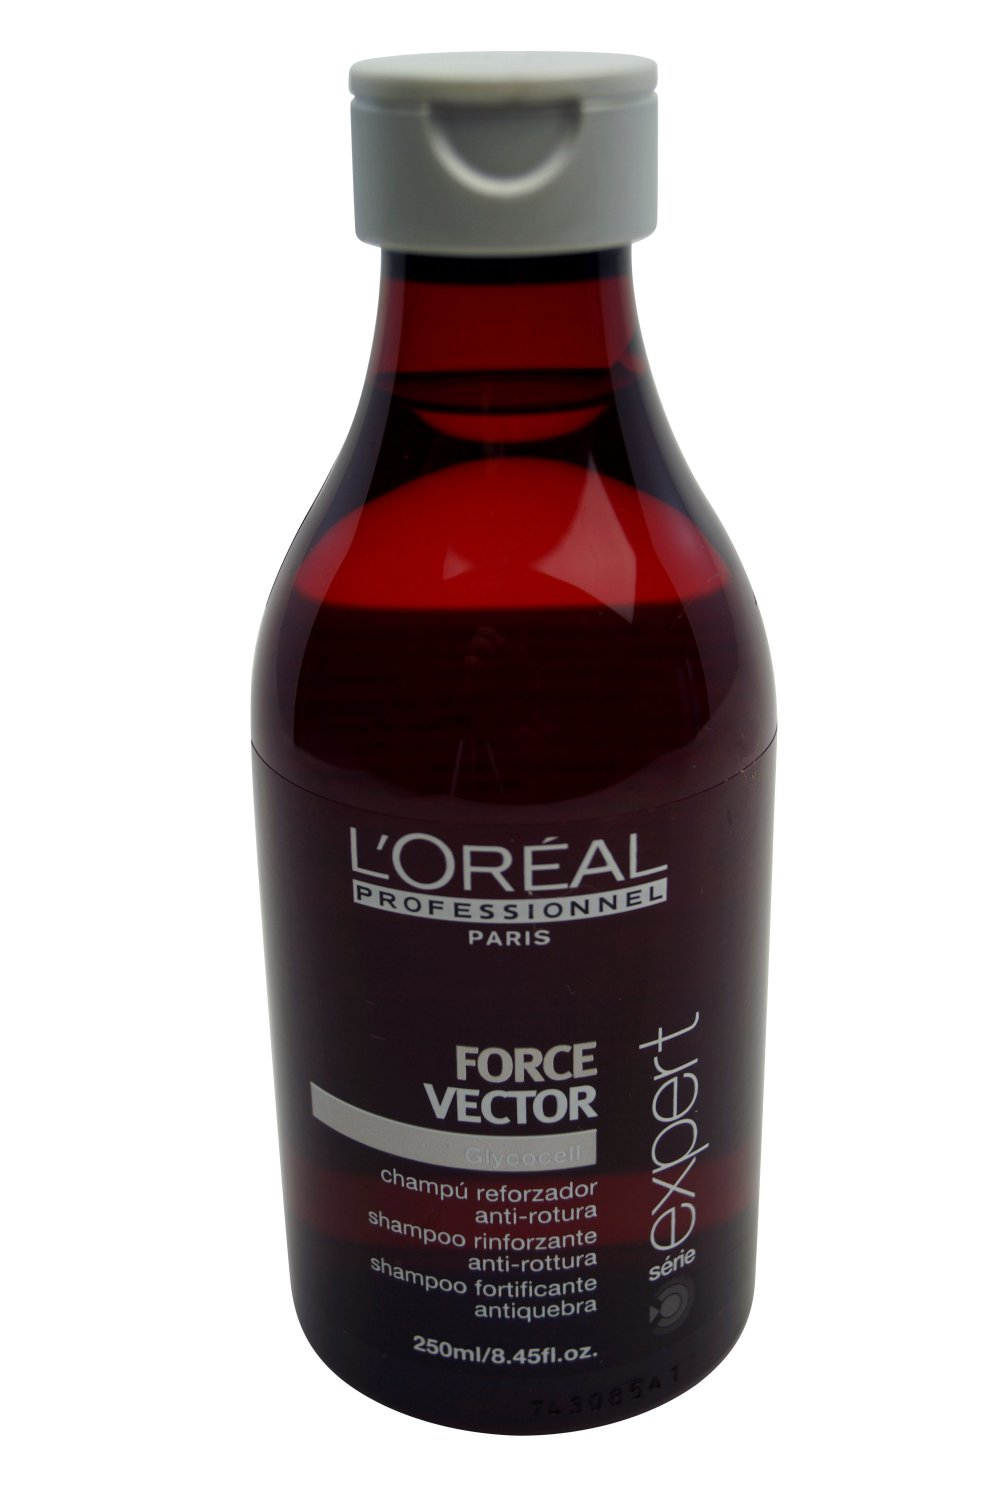 L'Oreal Professional  Serie Expert Paris Force Vector Glycocell Shampoo 8.45 oz